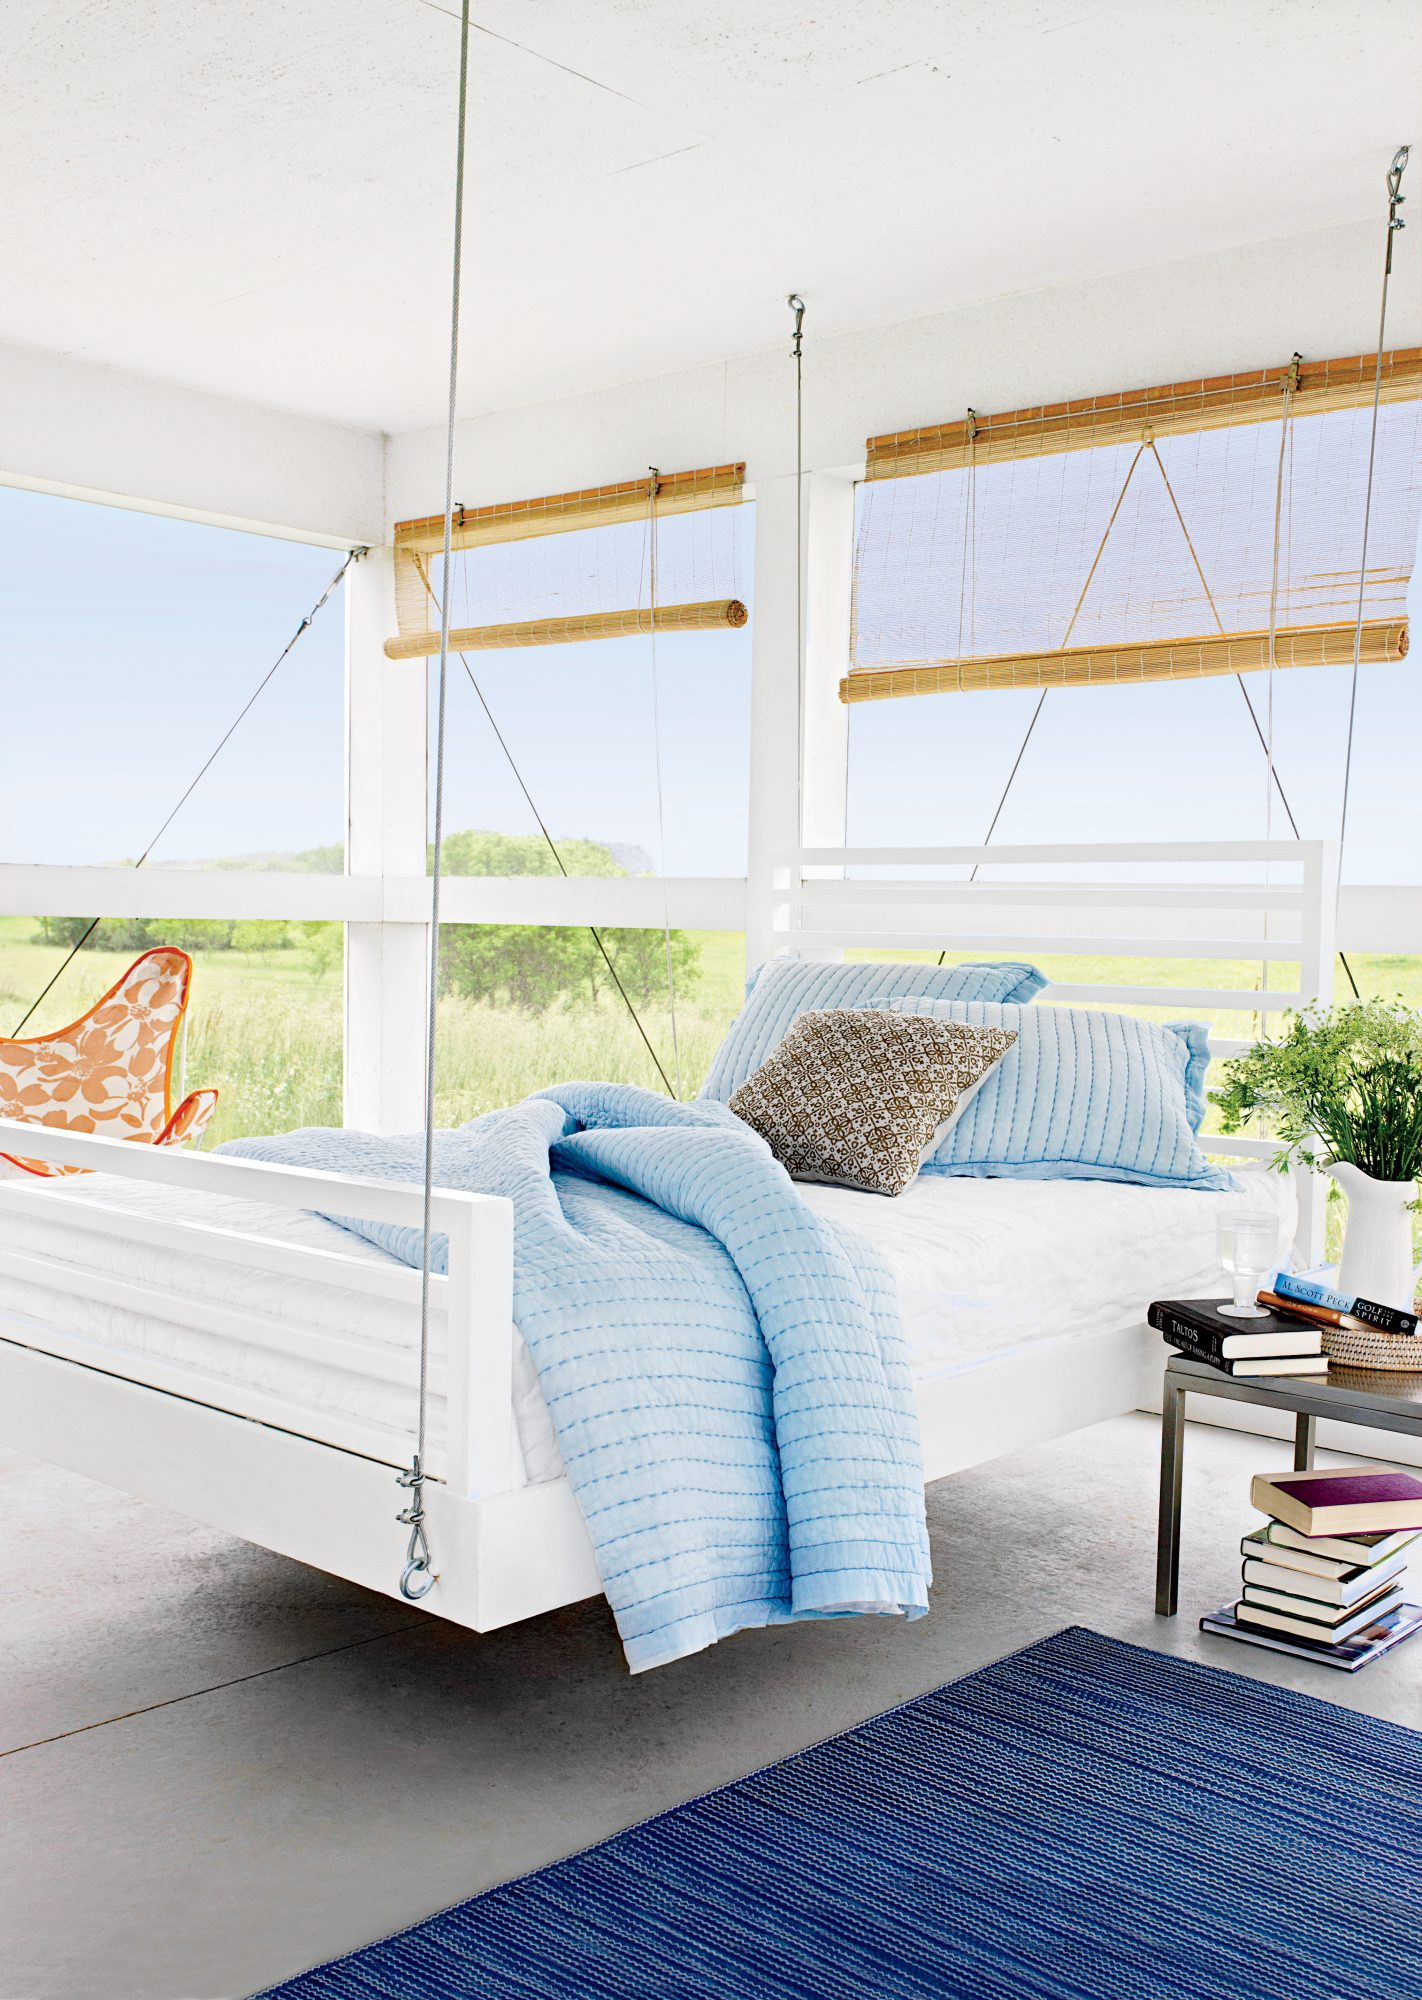 This open-air retreat may just be the definition of breezy. The large white bed is suspended from the ceiling with steel cables for a sleek look, but you can use marine-grade rope or chains for an equally sturdy and good-looking result. Fuss-free bamboo b